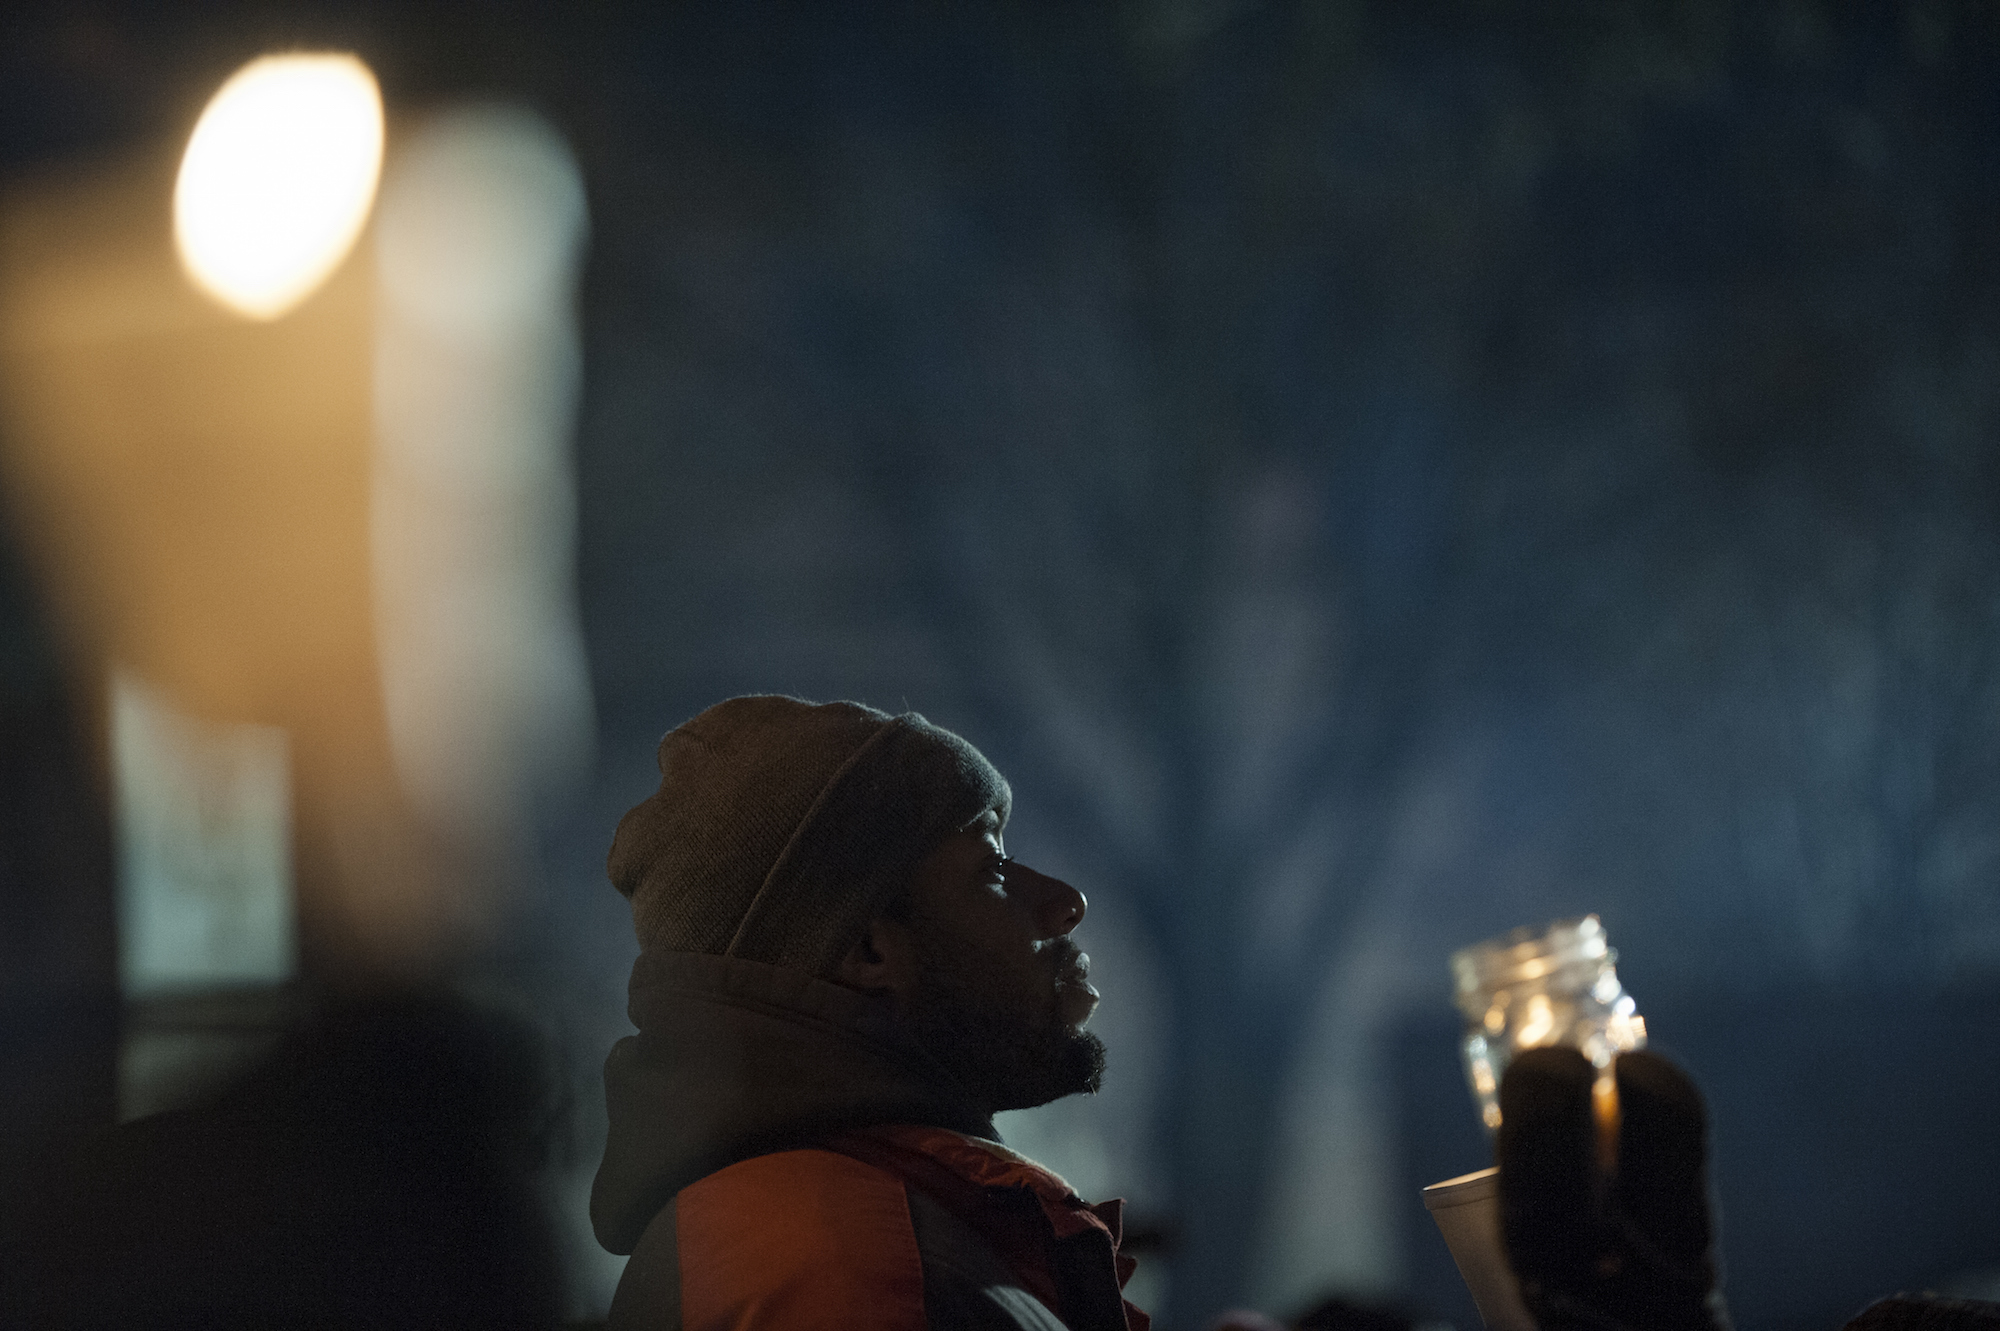 Protestors, activists, and community members listen to speeches at a candlelight vigil held for Jamar Clark on November 20 in Minneapolis, Minnesota. (Stephen Maturen/Getty Images)